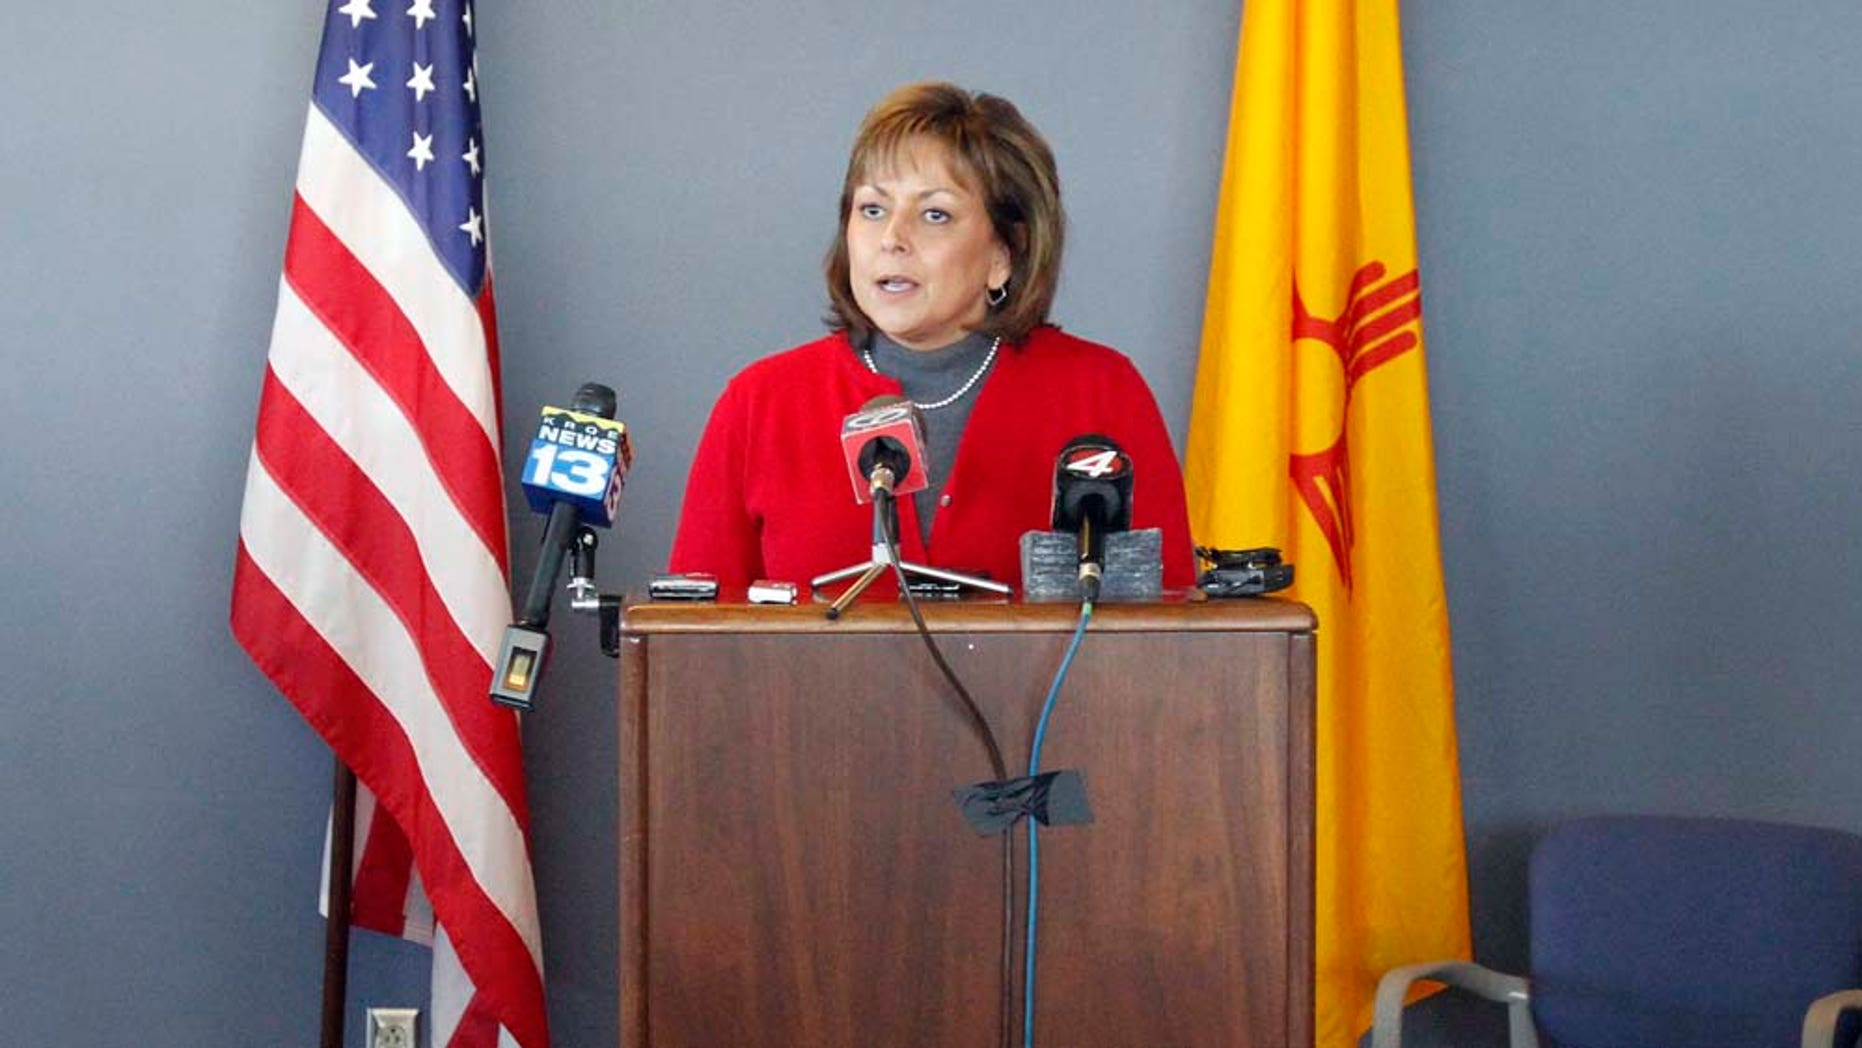 New Mexican Governor Susana Martinez makes announcements regarding gas shortages from the Emergency Operating Center on the National Guard Base just south of Santa Fe, N.M., on Thursday, Feb. 3, 2011.  Secretary of Homeland Security and Emergency Management Michael Duvall, left, and  Major General Kenny C. Montoya, right, look on.    Martinez has declared a state of emergency as thousands of New Mexico residents lost natural gas service due to the bitter cold.  Martinez sent all nonessential state workers home for the day Thursday, and urged all residents to turn down their thermostats, bundle up and shut off appliances they don't need for the next 24 hours.   (AP Photo/The New Mexican, Natalie Guillén)